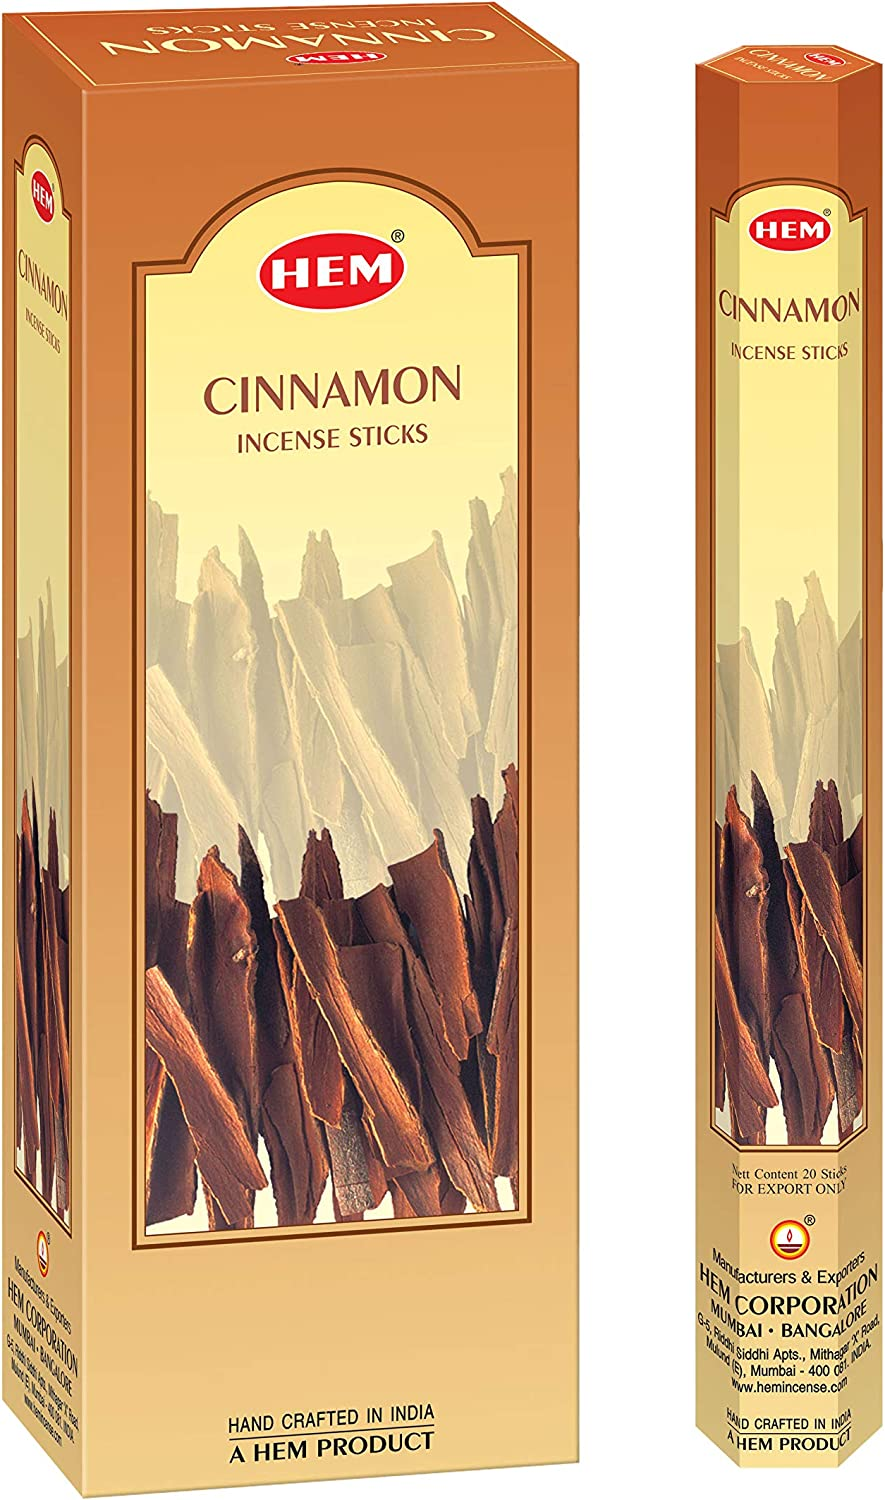 HEM Cinnamon Incense Sticks - Pack of 6 - 301g